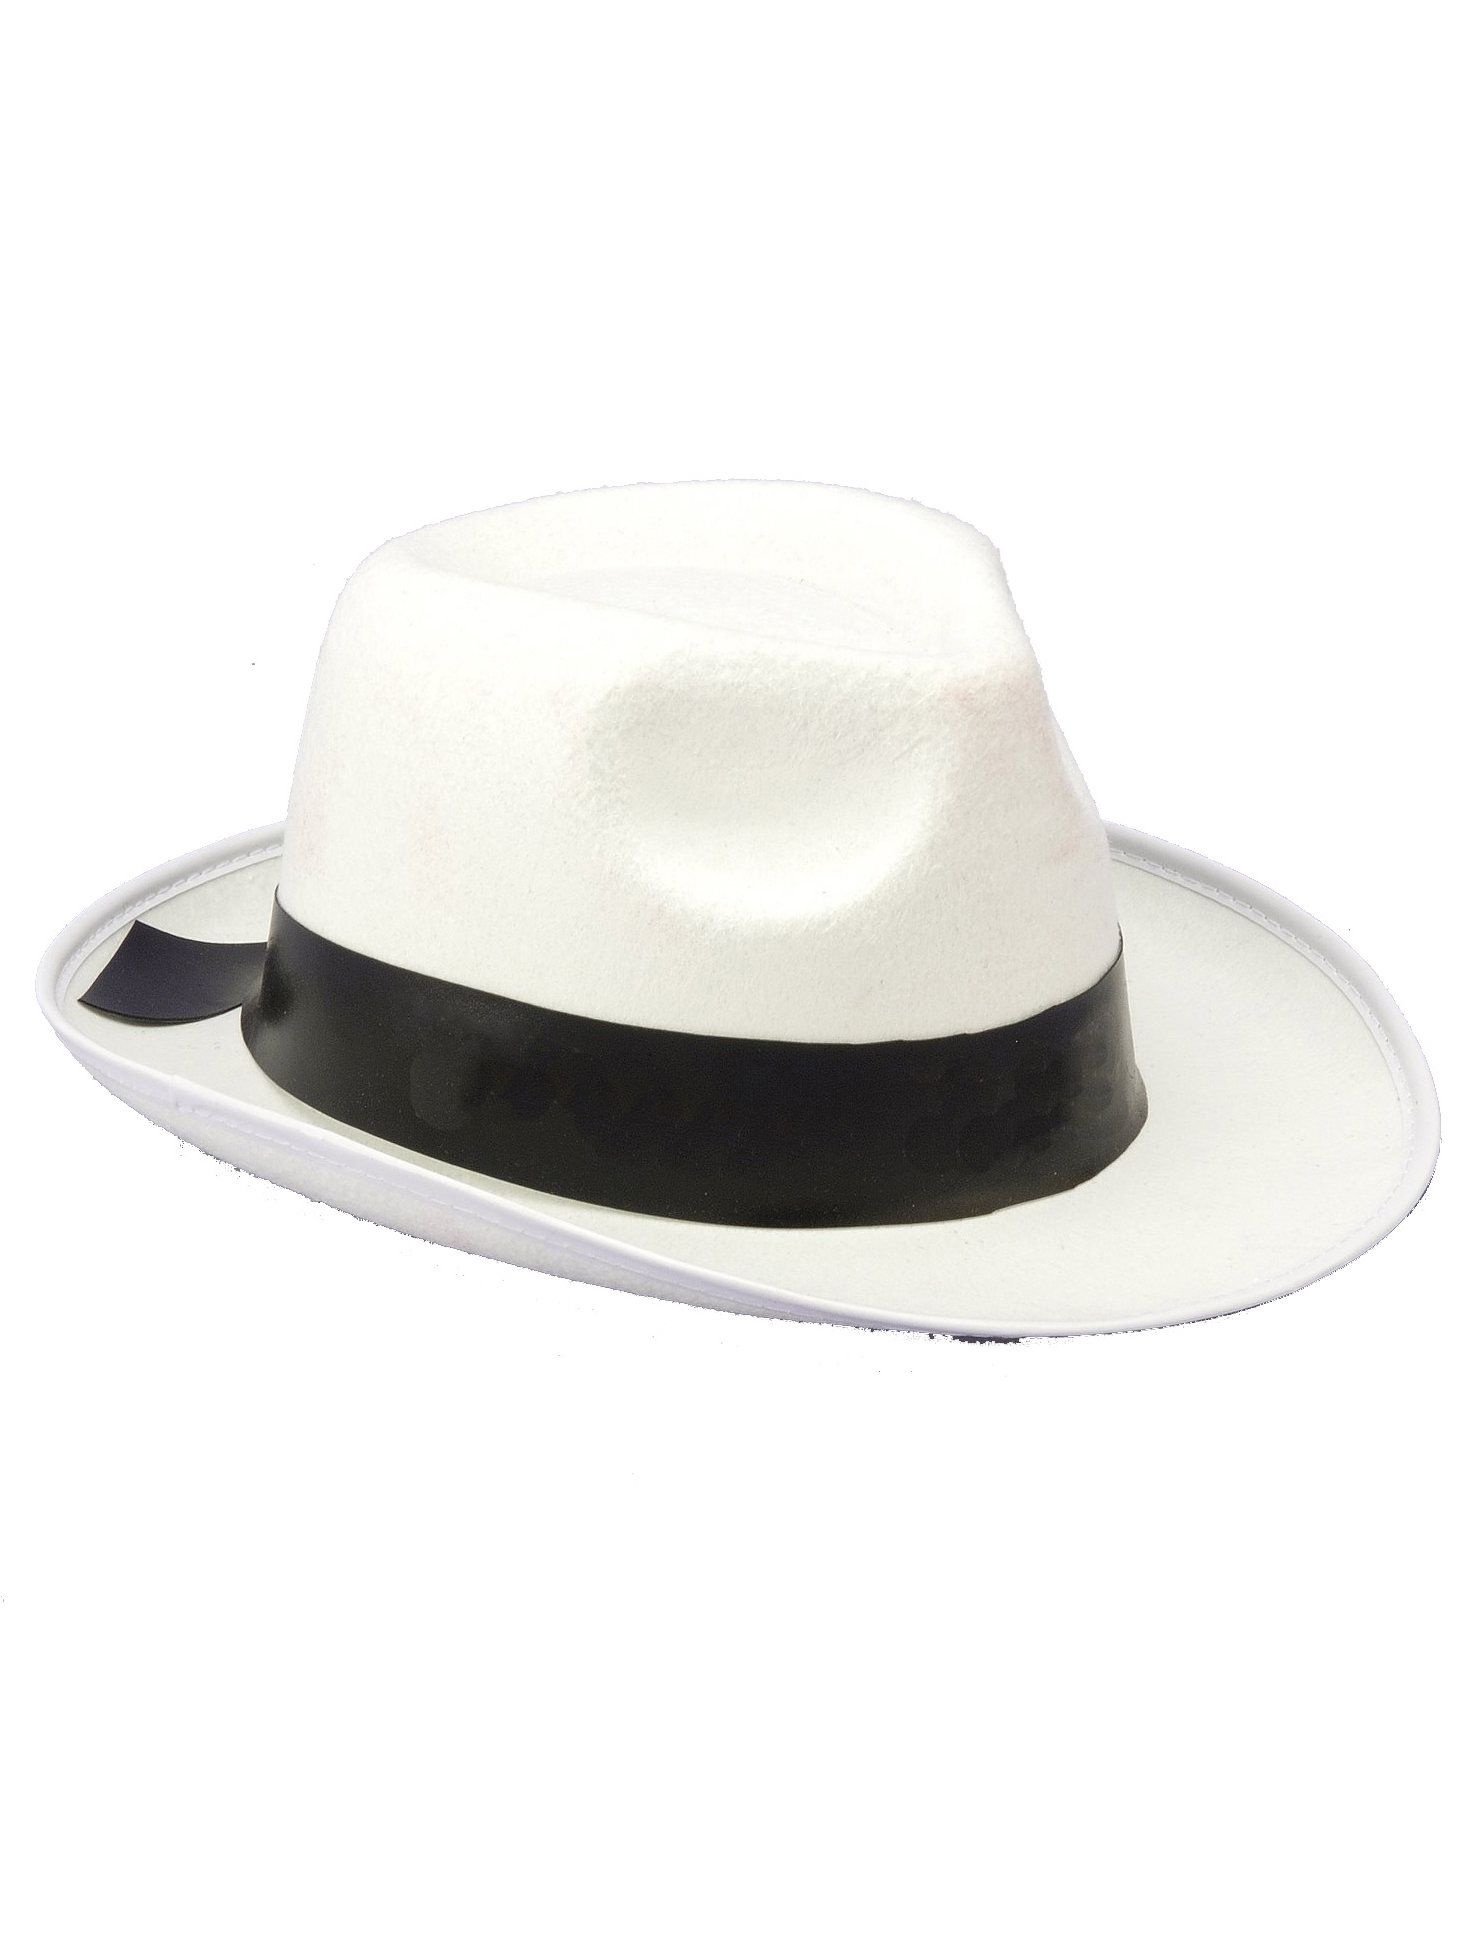 af549523b4eba White Gangster Hat - Costume Accessories for 2018